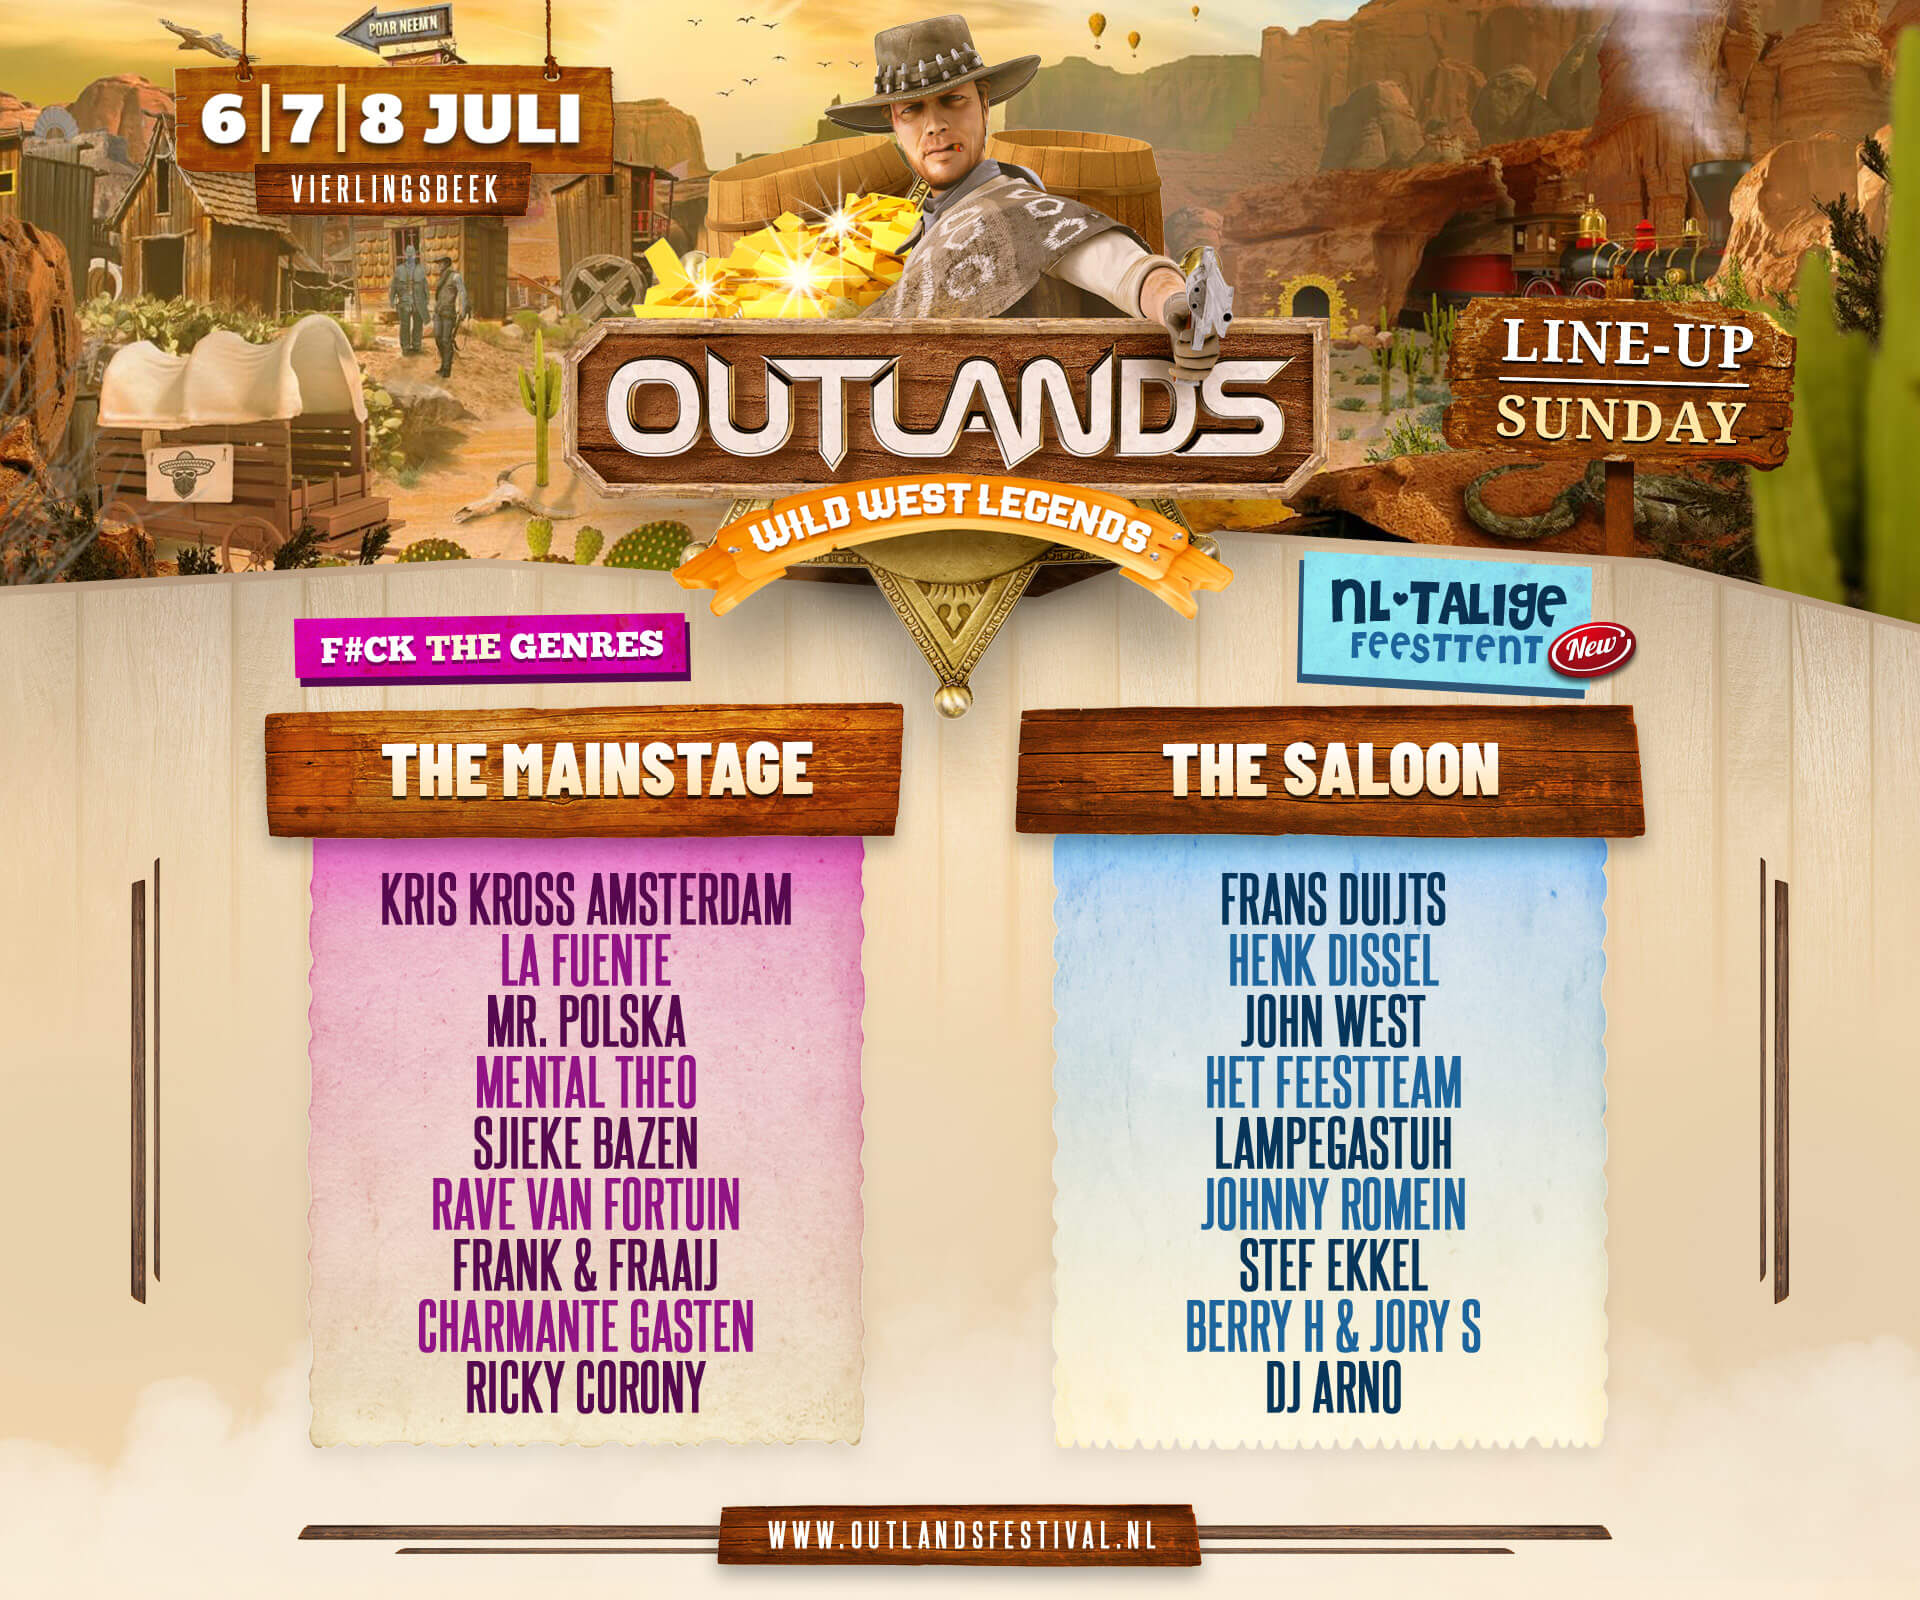 outlands18-site-lineup-sunday